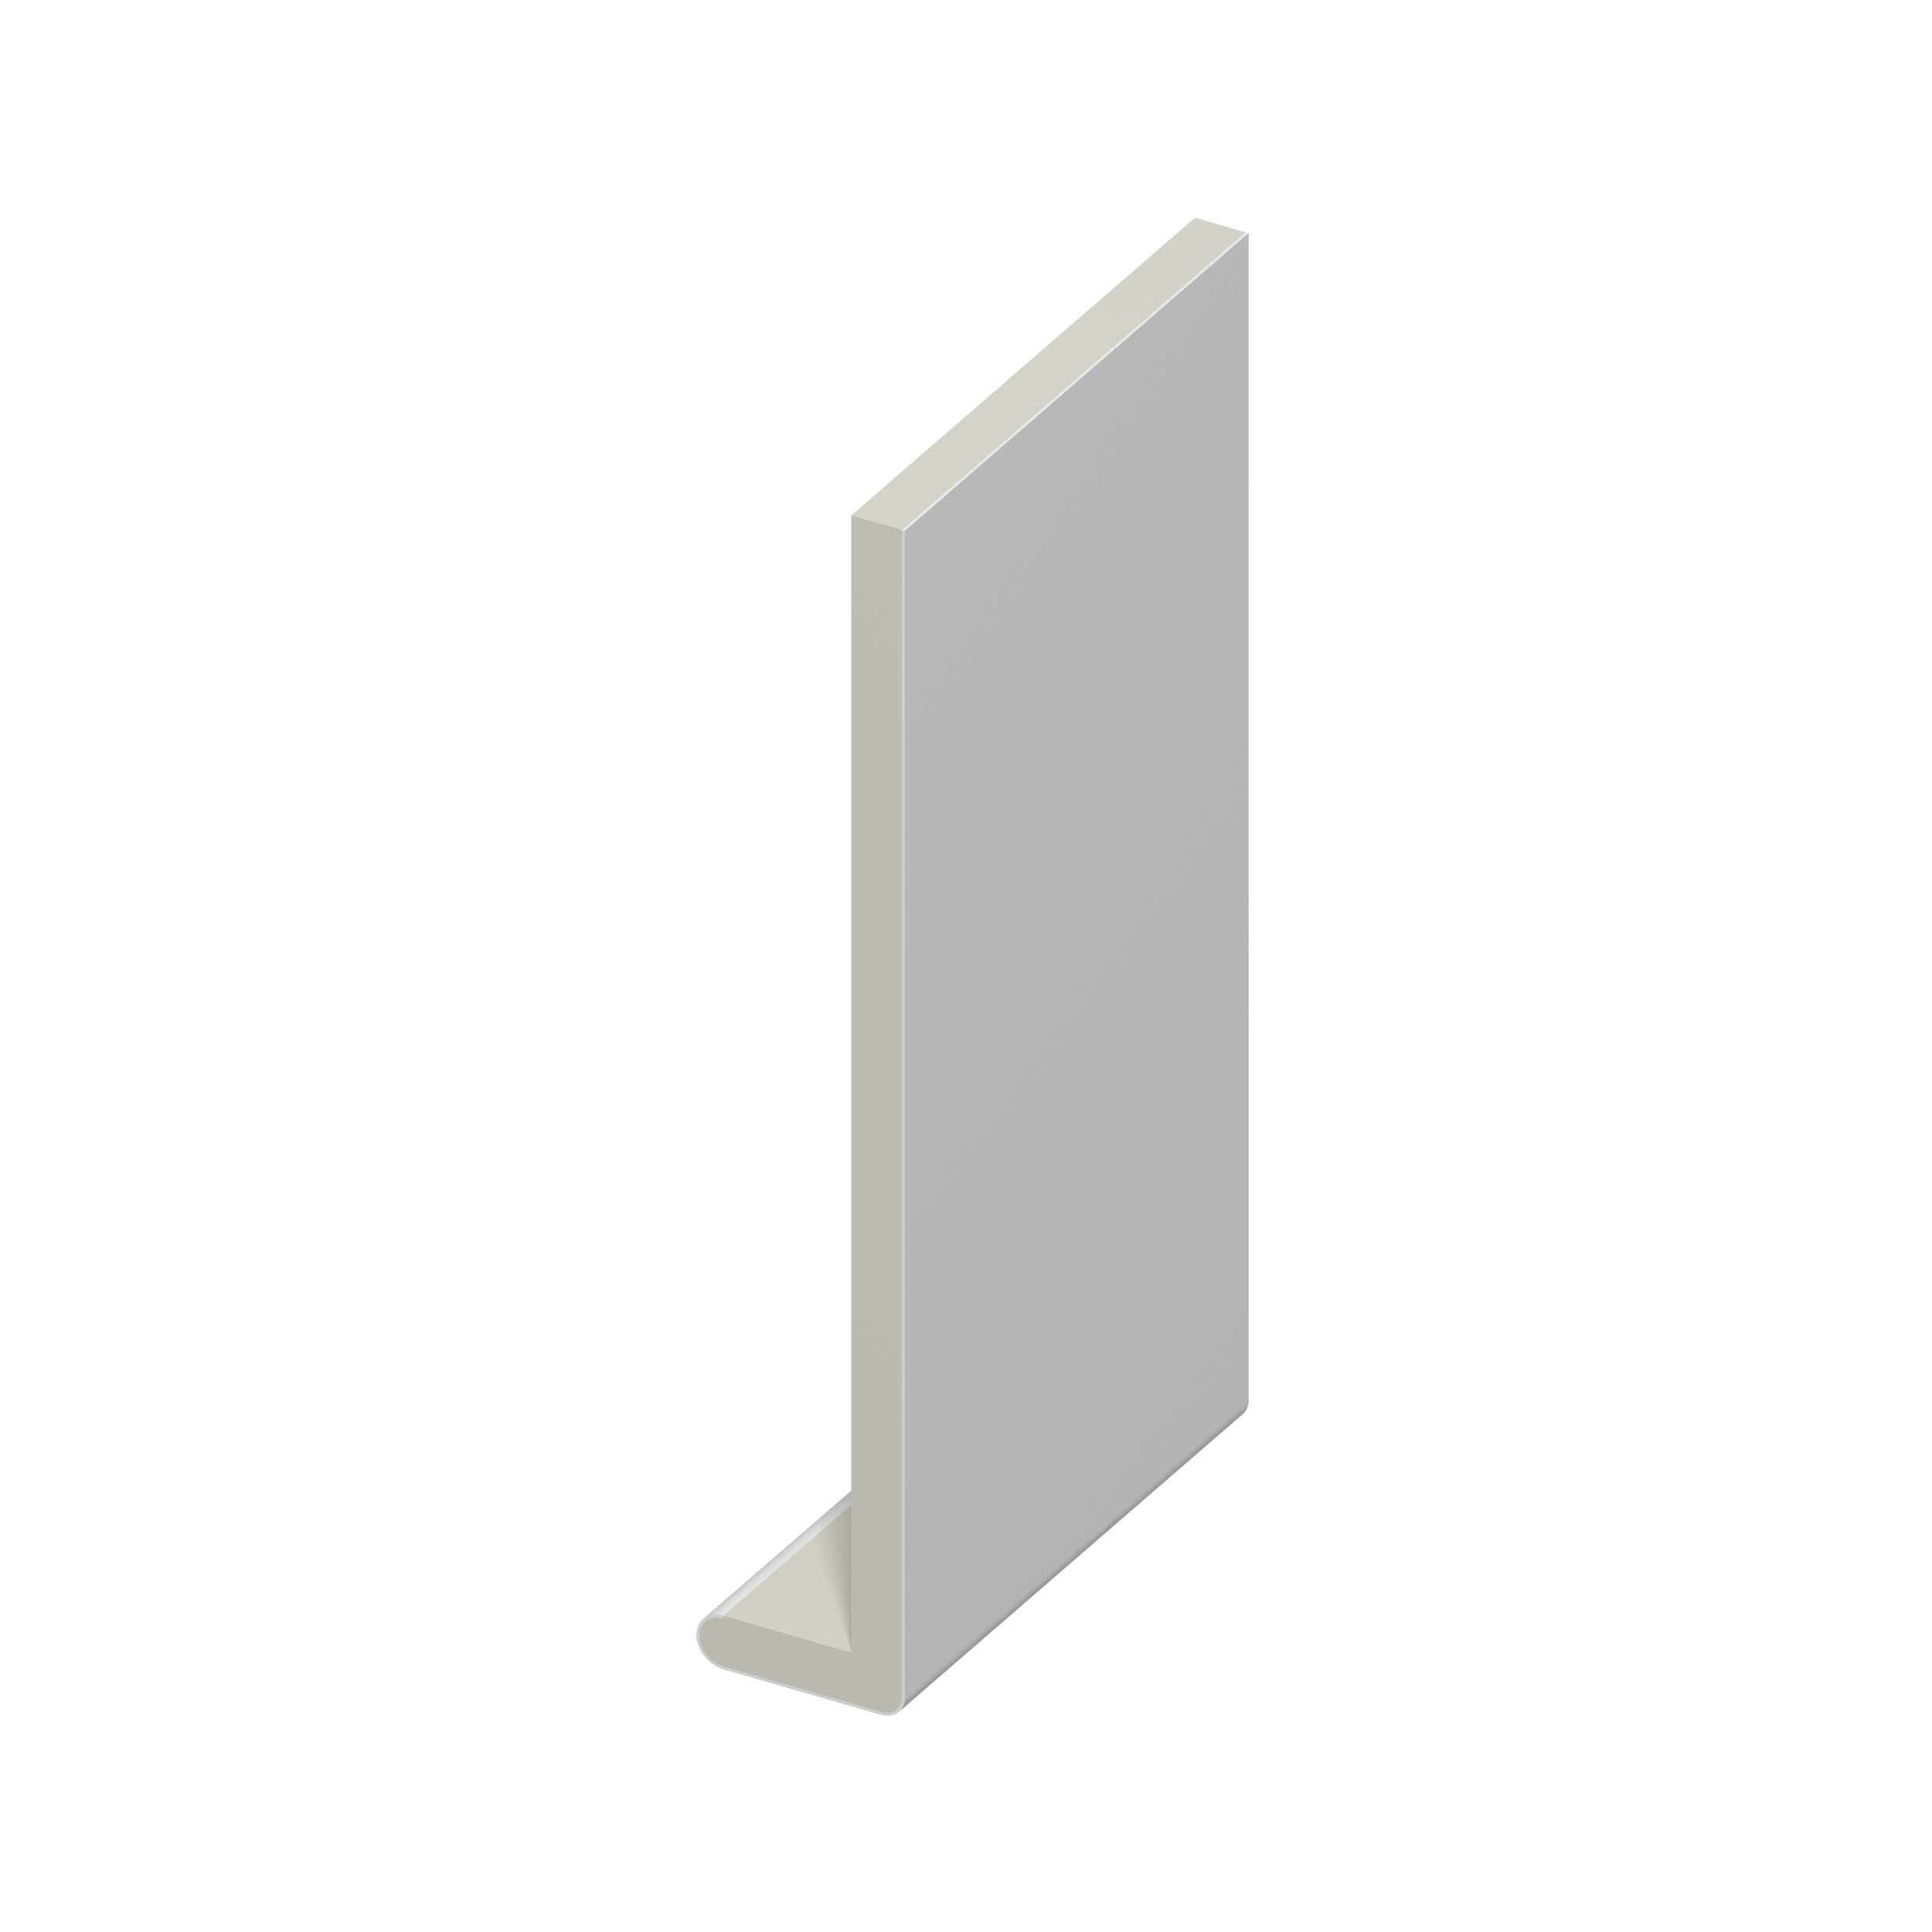 Capping Board